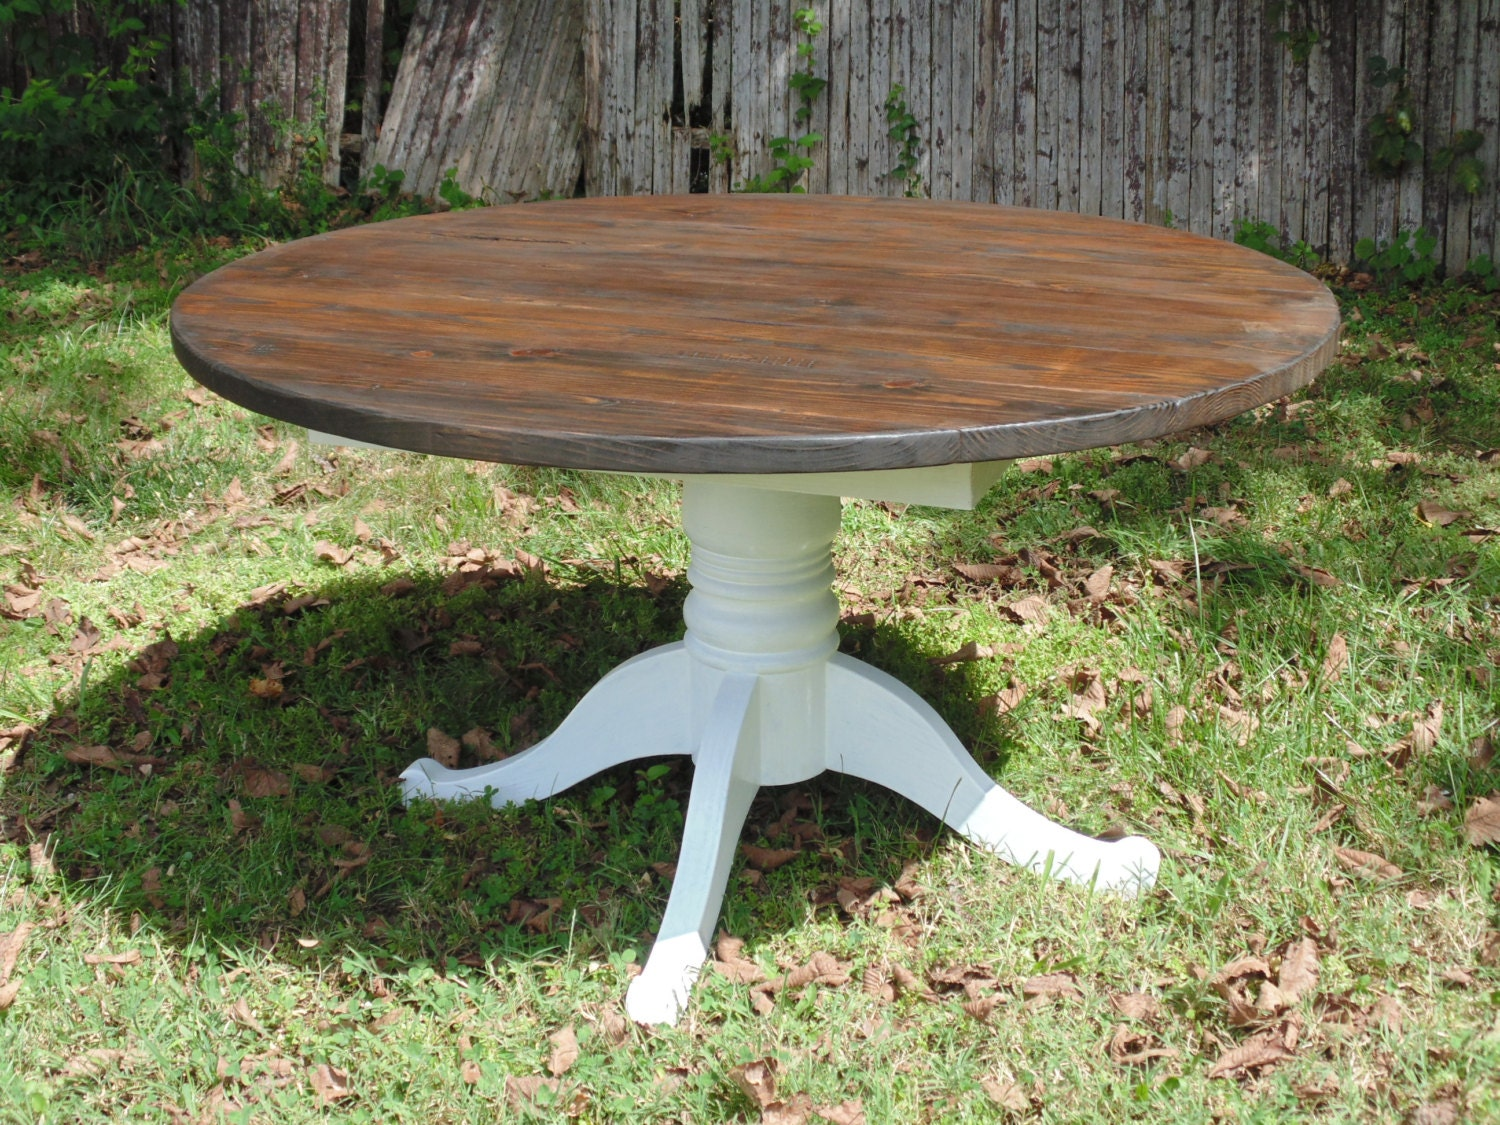 Allegany Round Dining Table Reclaimed Wood Custom : ilfullxfull653748666iodw from www.etsy.com size 1500 x 1125 jpeg 618kB